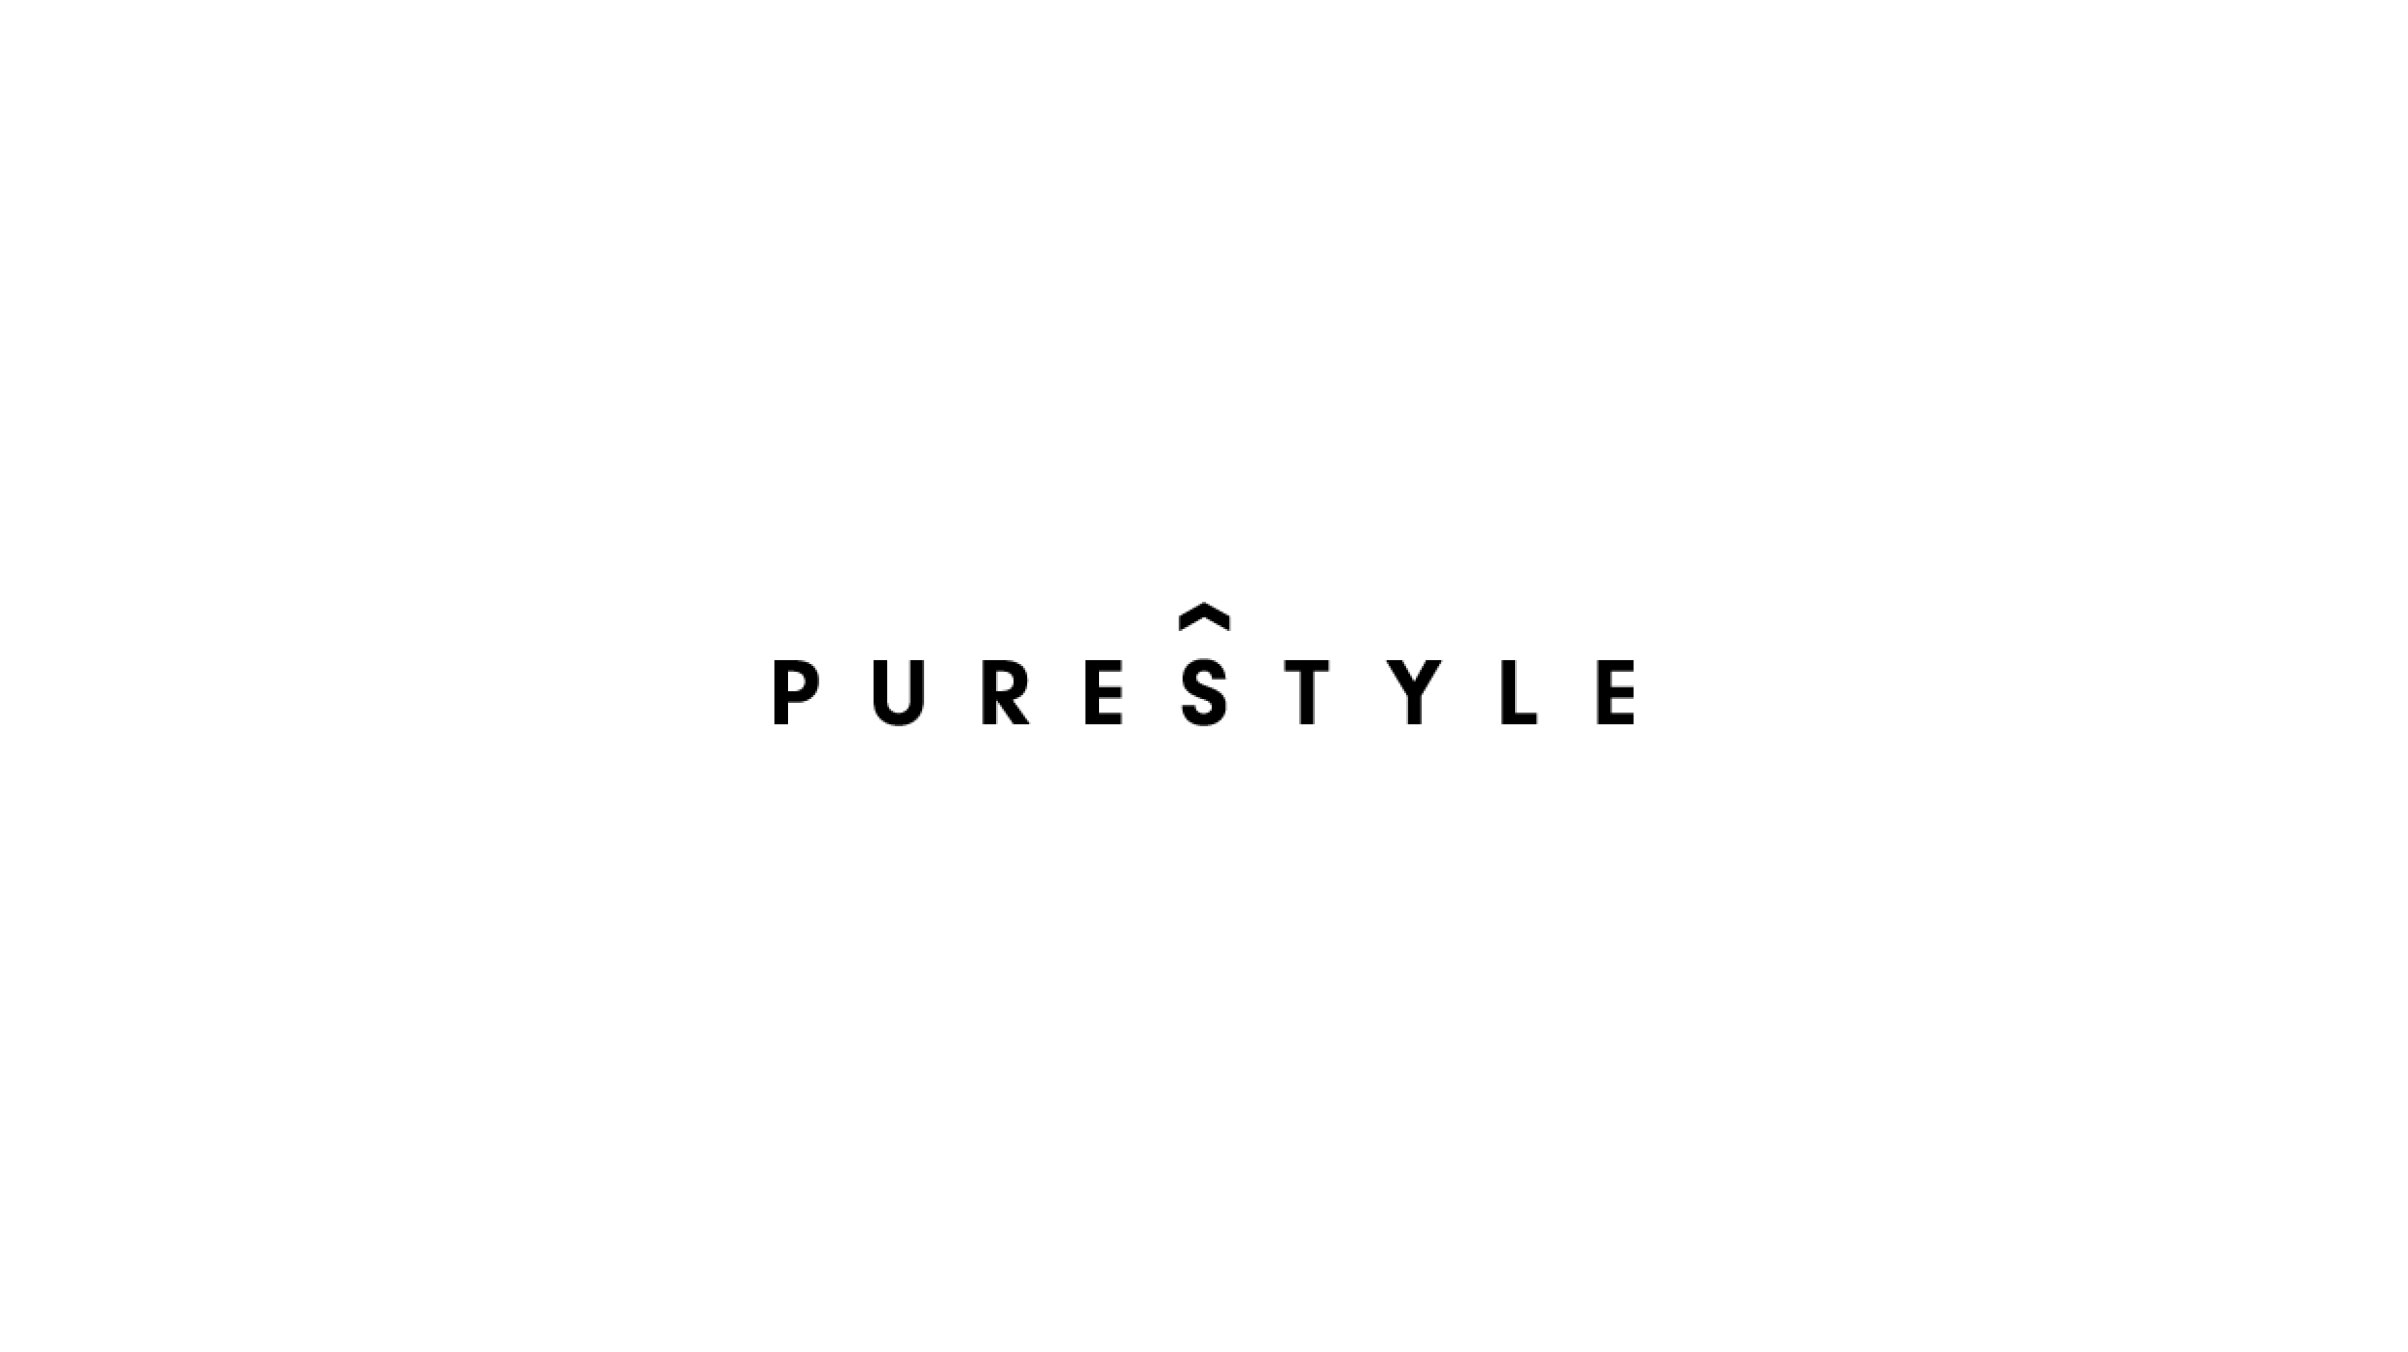 PureStyle_01_2x